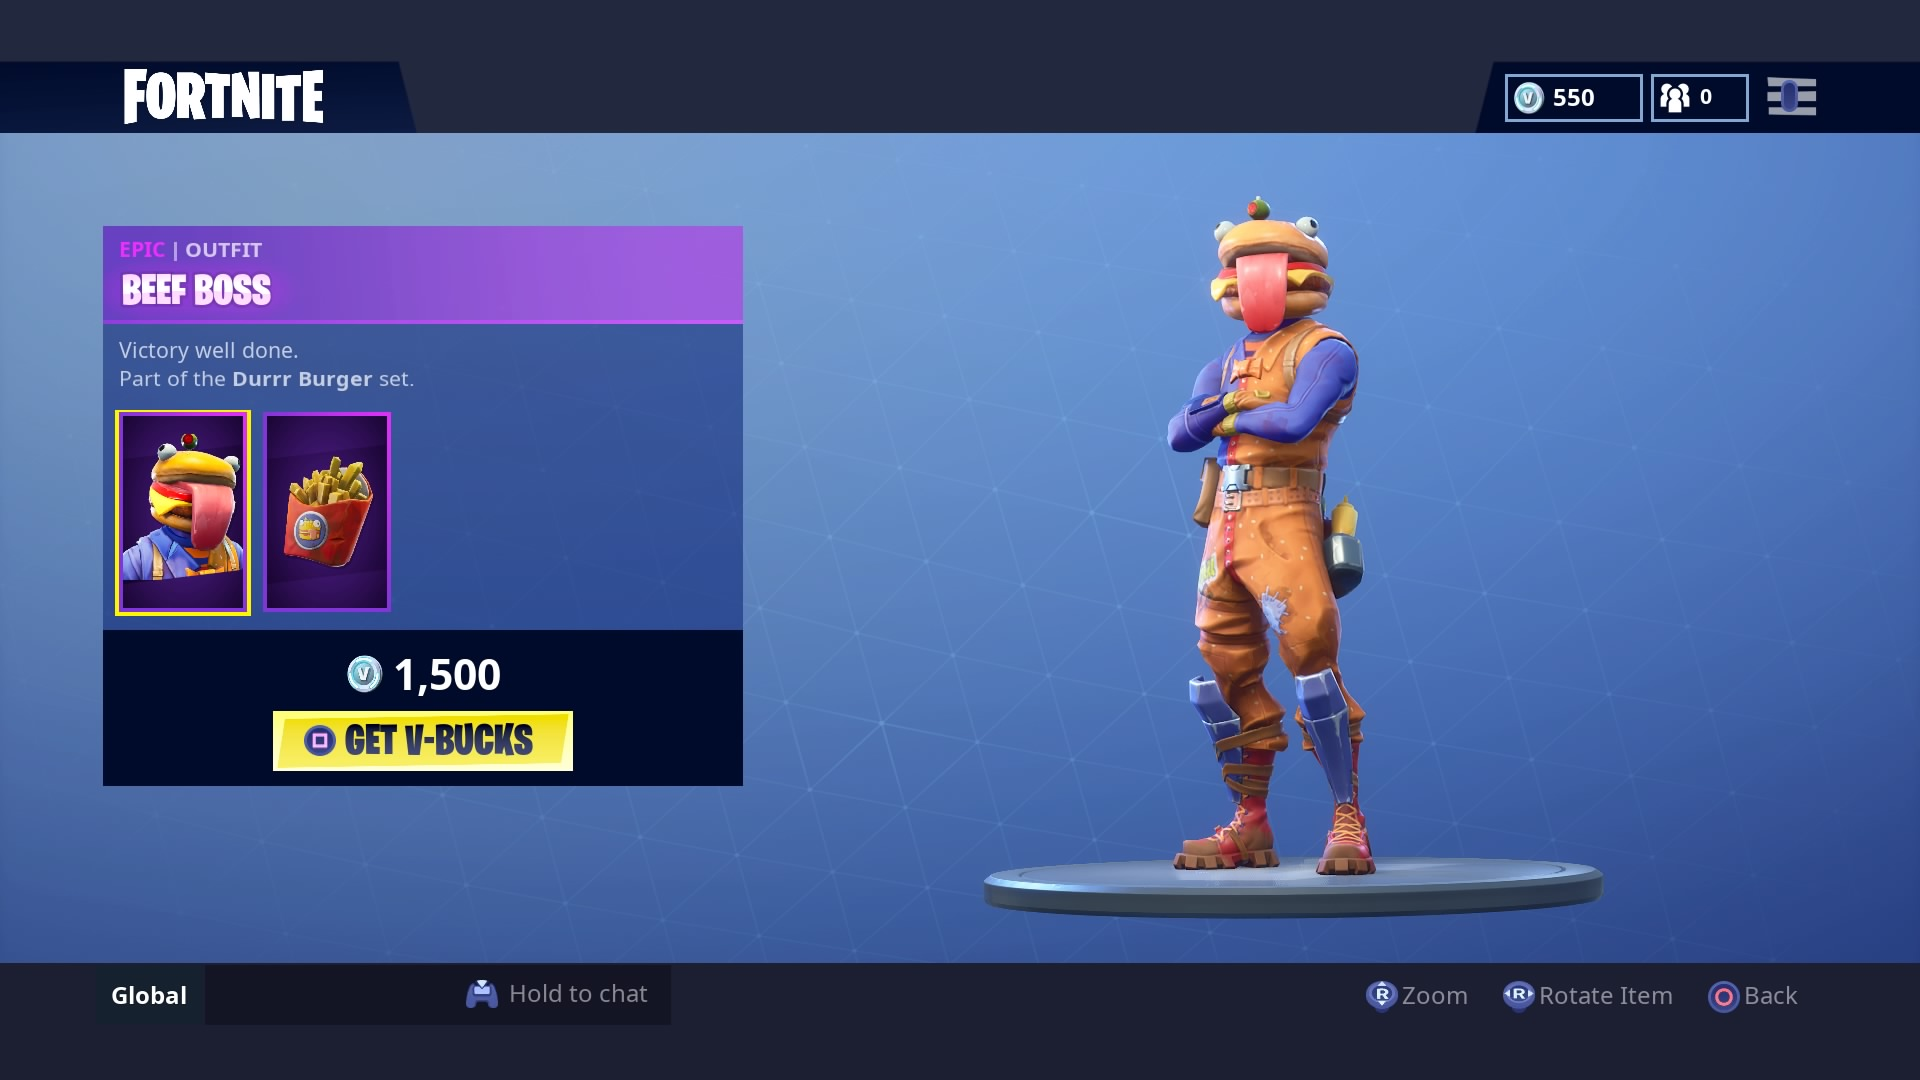 Fortnite Beef Boss Wallpaper Rock Paper Scissors Fortnite 3080122 Hd Wallpaper Backgrounds Download